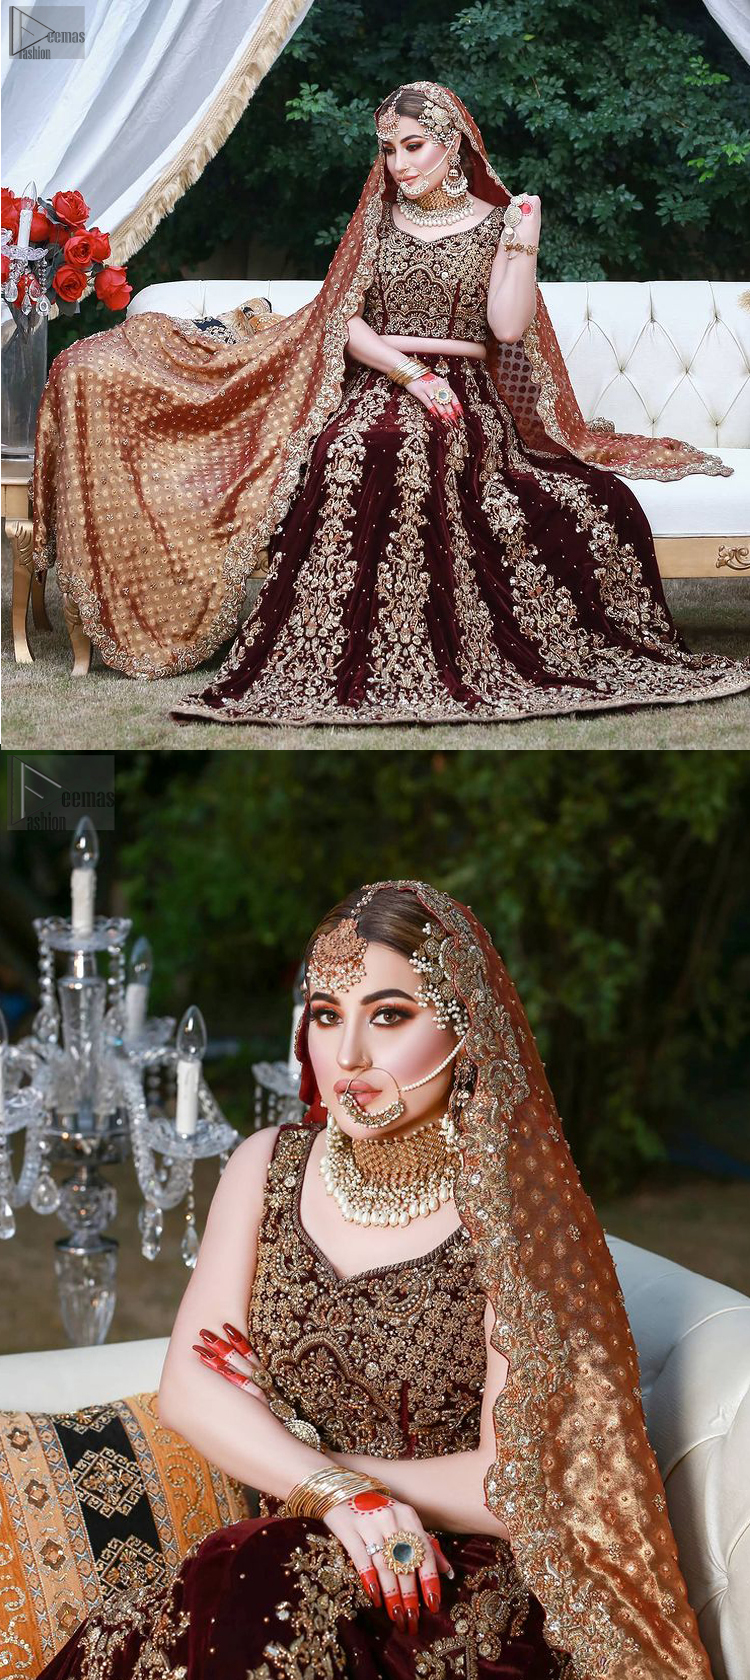 A copper-coloured Dupatta adds a cultural sense to the dress code, making you appear glamourous.